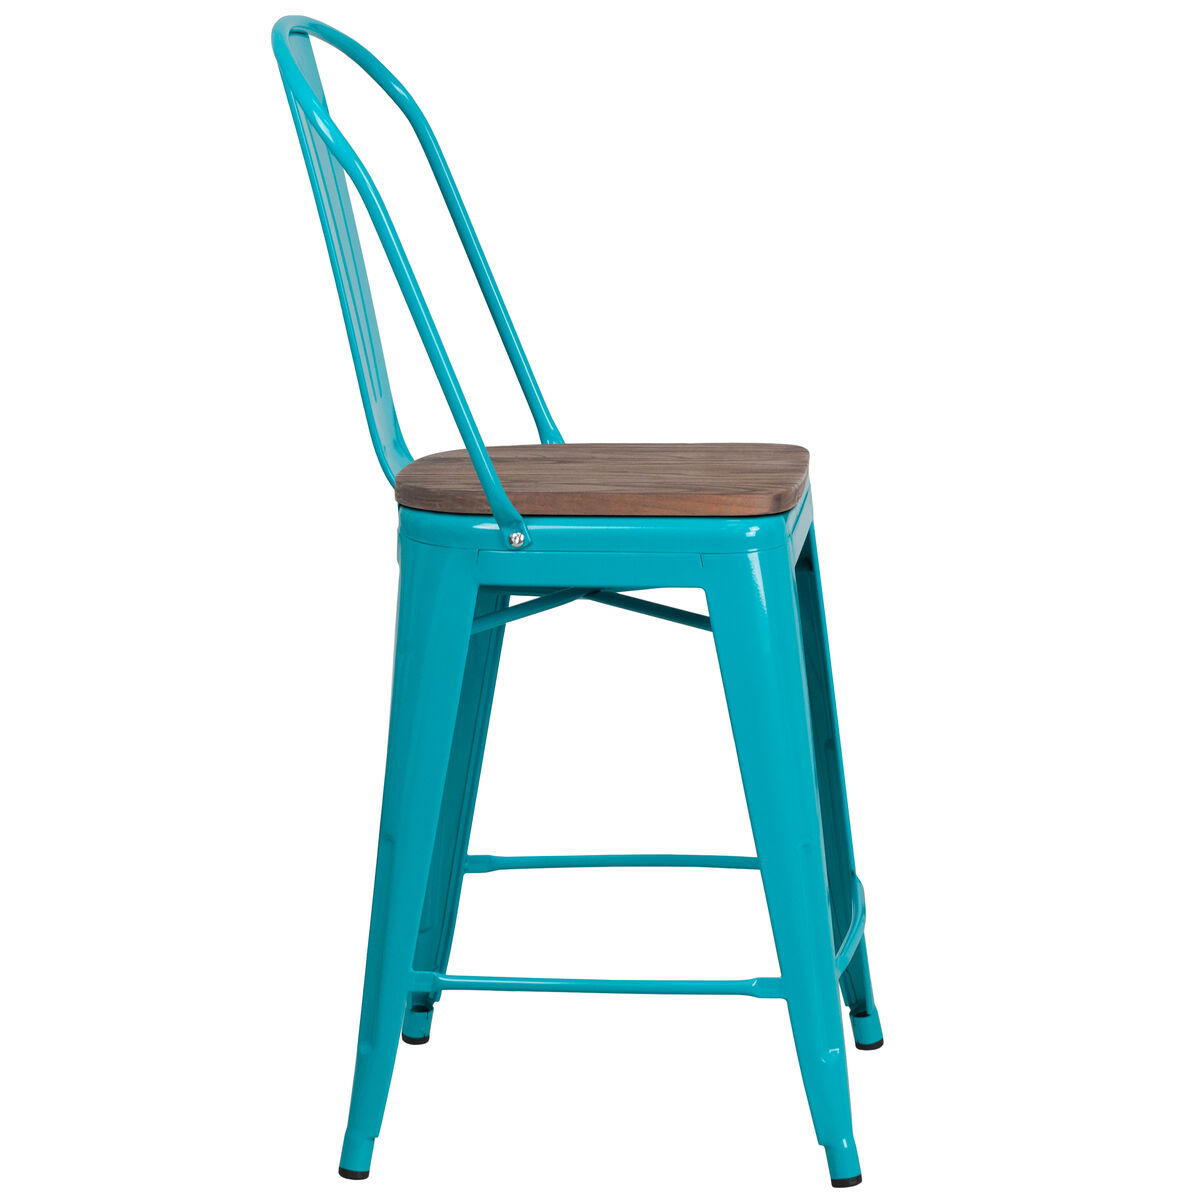 Magnificent 24 High Crystal Teal Blue Metal Counter Height Stool With Back And Wood Seat Machost Co Dining Chair Design Ideas Machostcouk